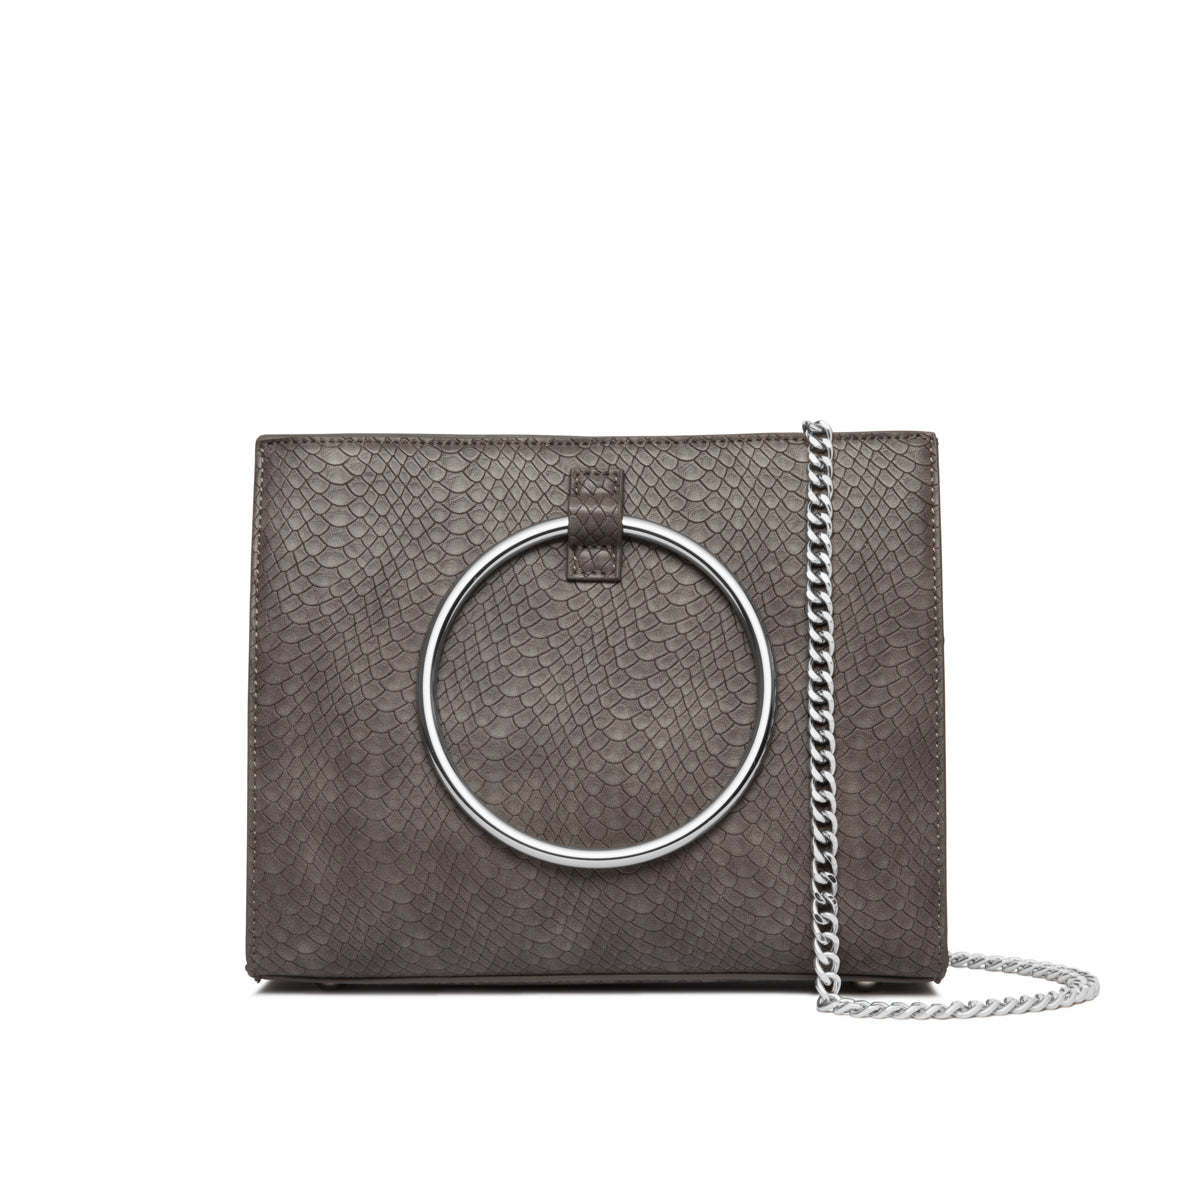 Moda Top Handle bag (Frost Grey/Silver)